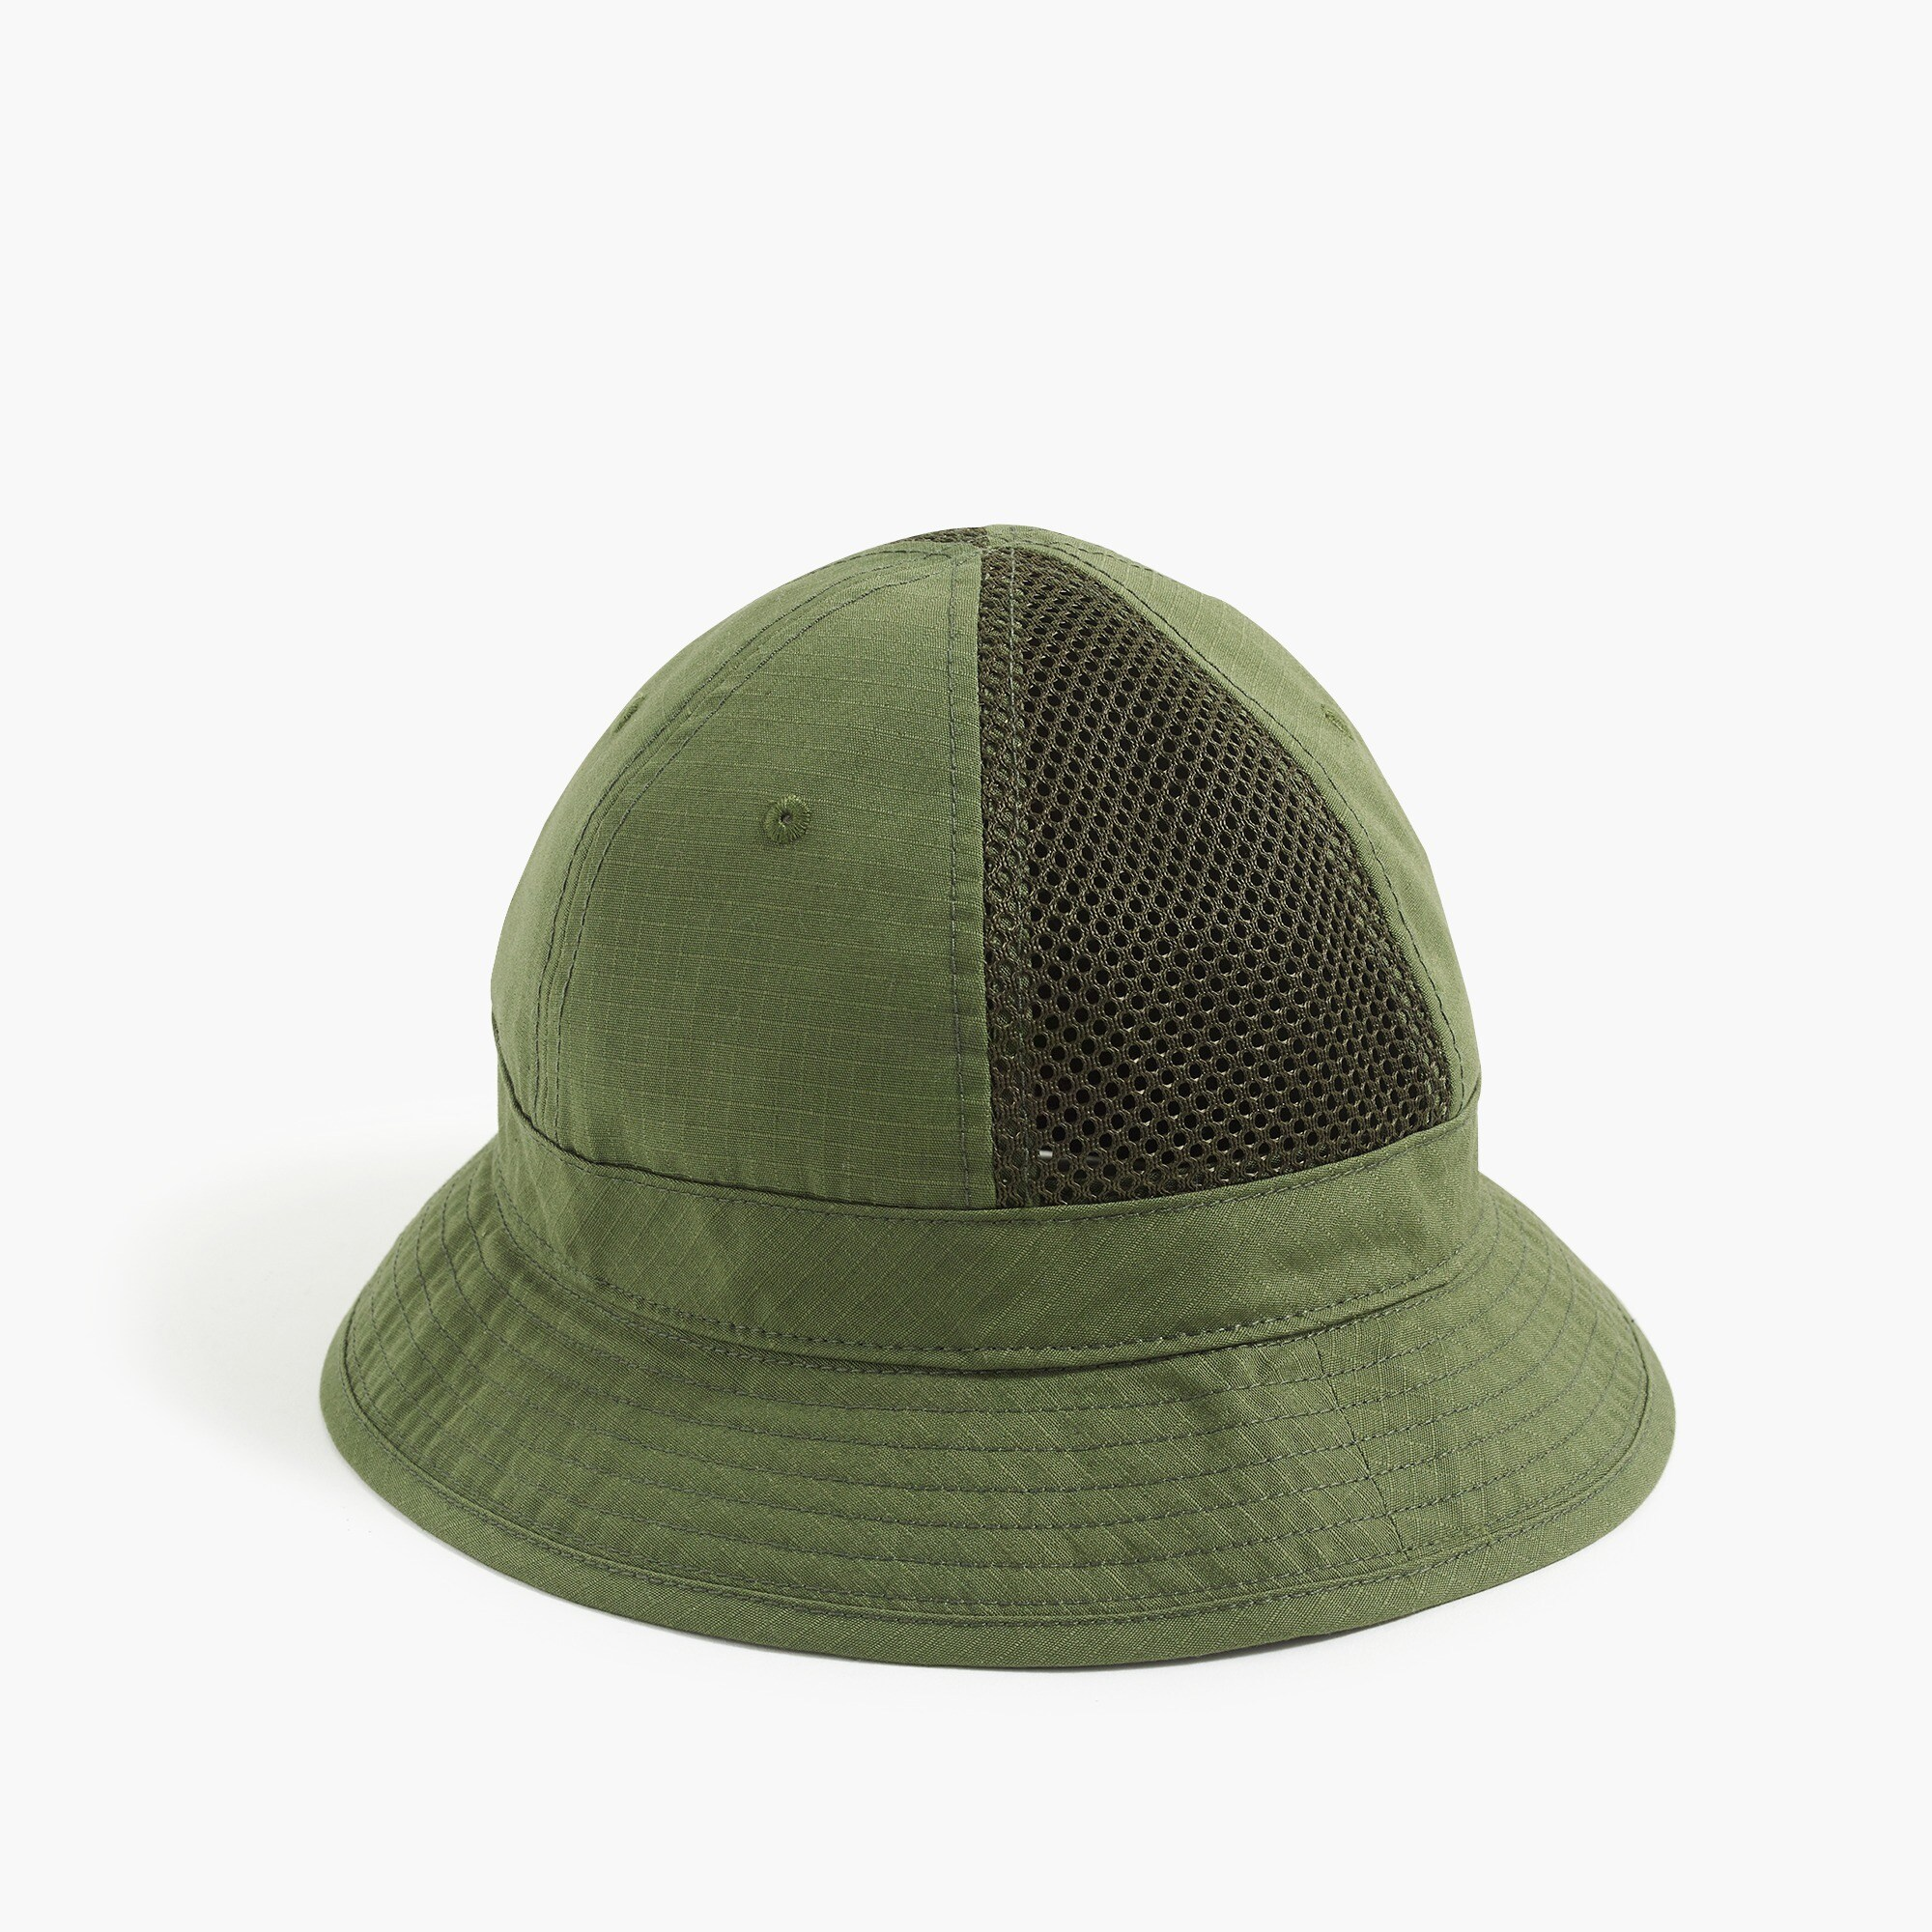 mens Mesh paneled bucket hat